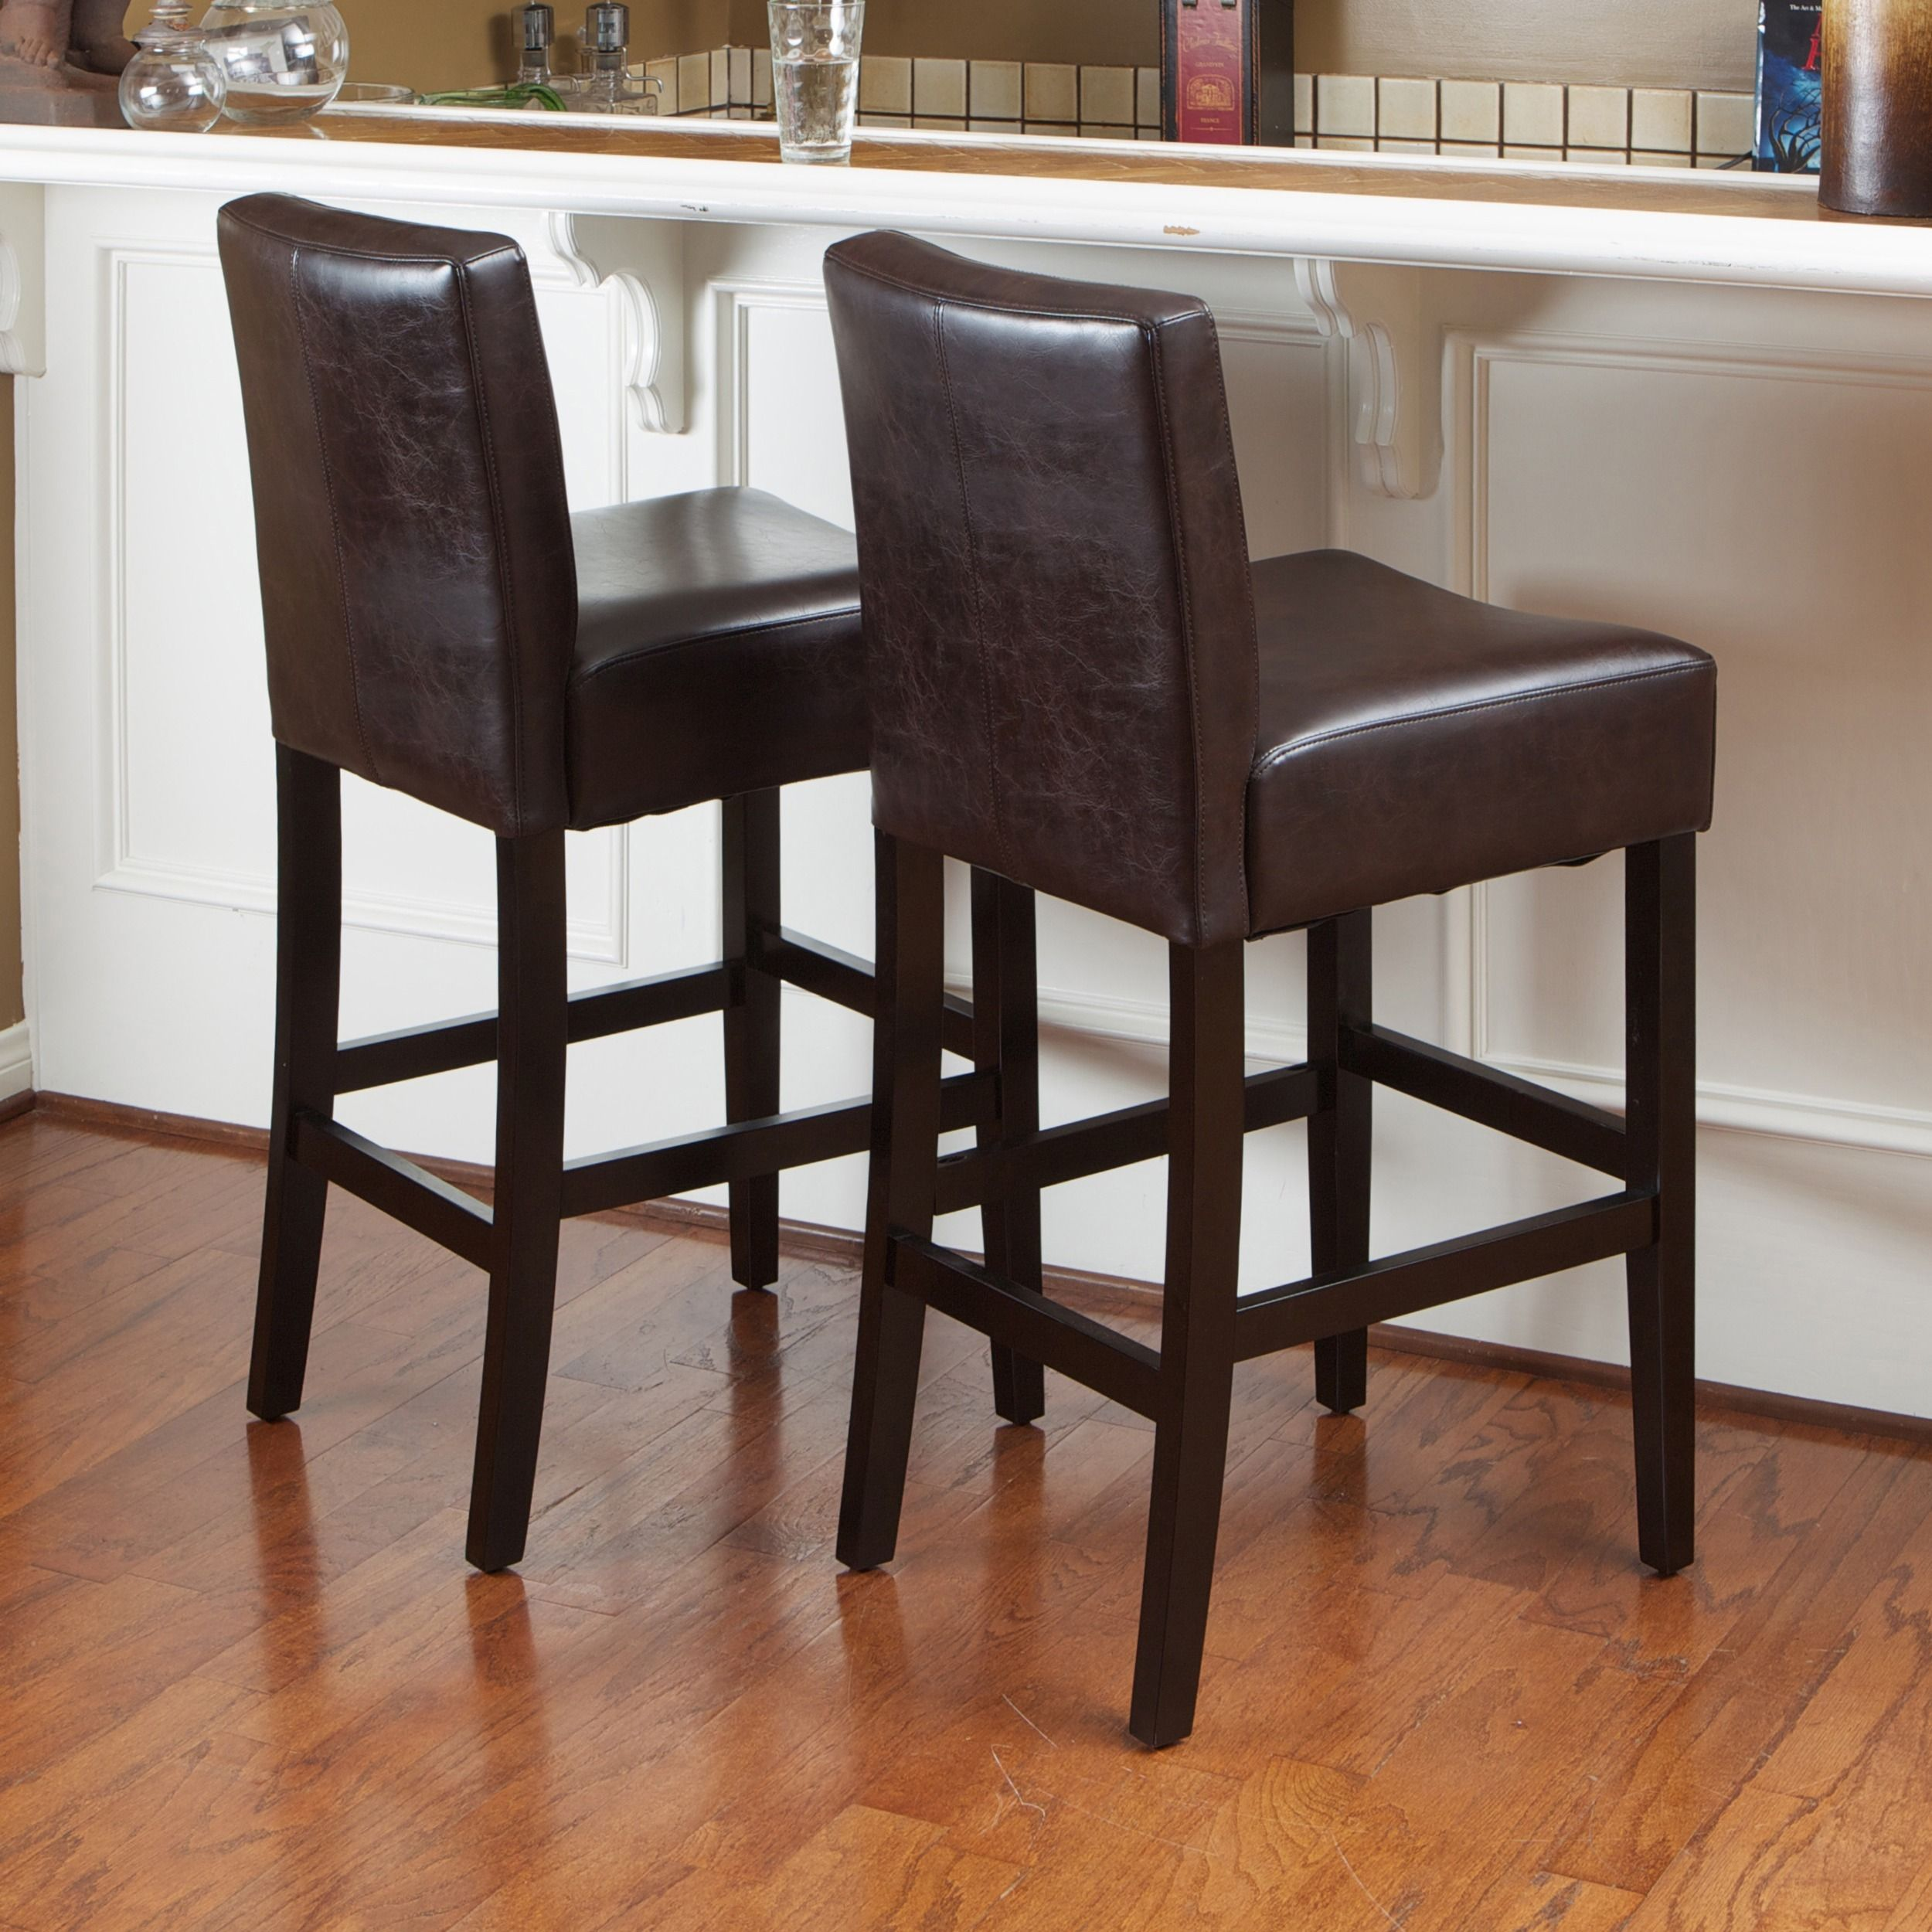 Lopez 30 Inch Brown Leather Bar Stools By Christopher Knight Home Set Of 2